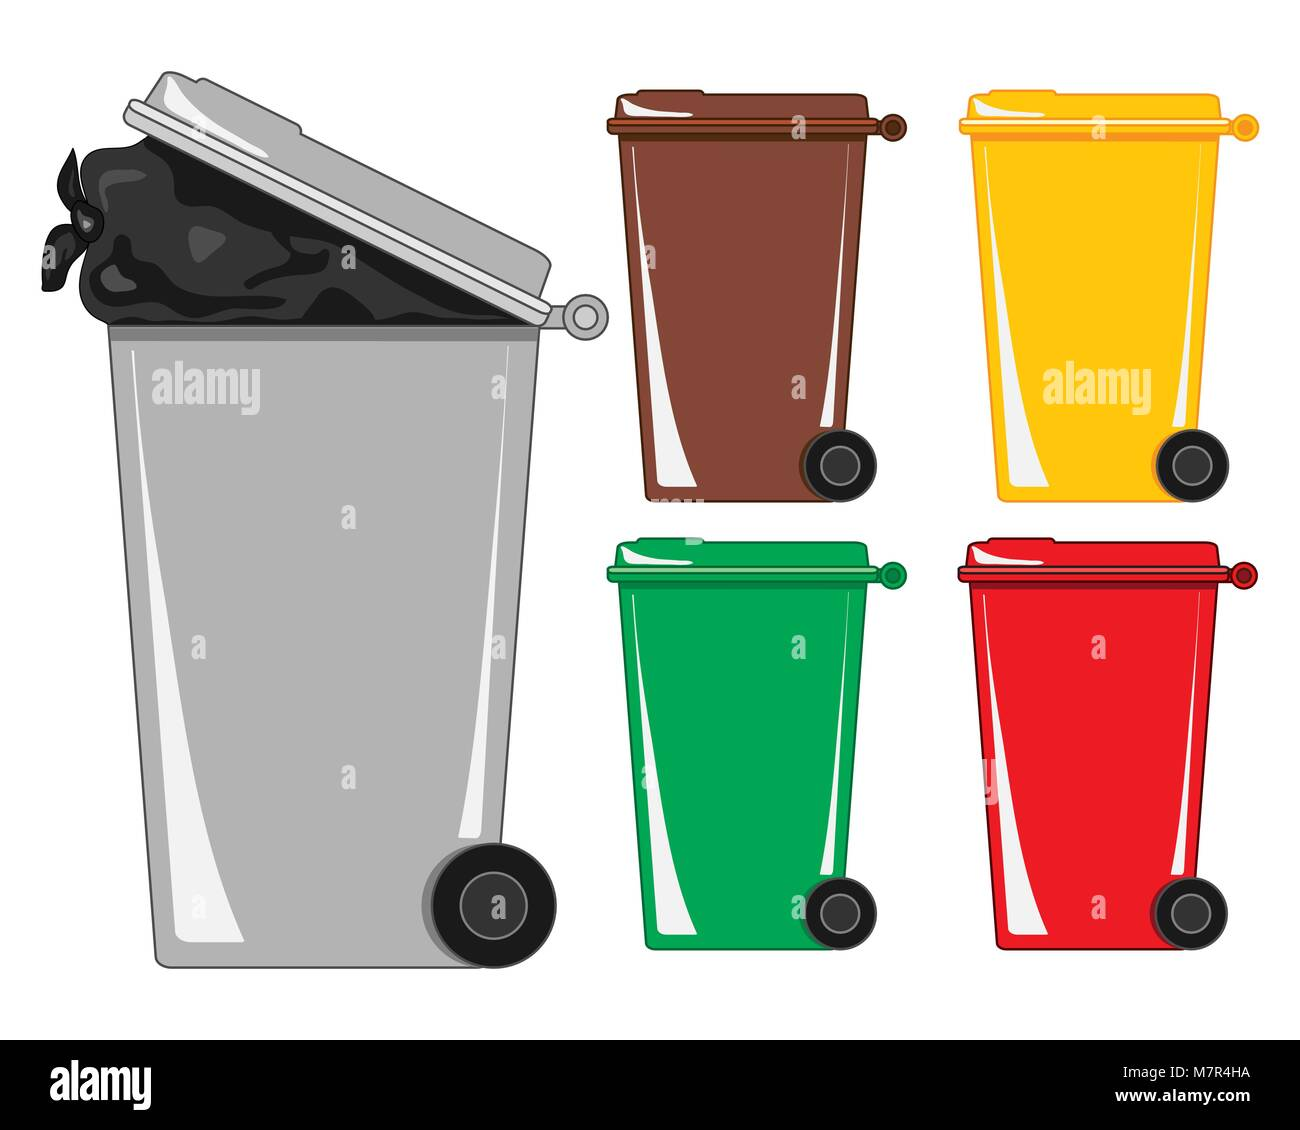 a vector illustration in eps format of a gray refuse bin with a bag of rubbish showing and various recycling bins - Stock Vector